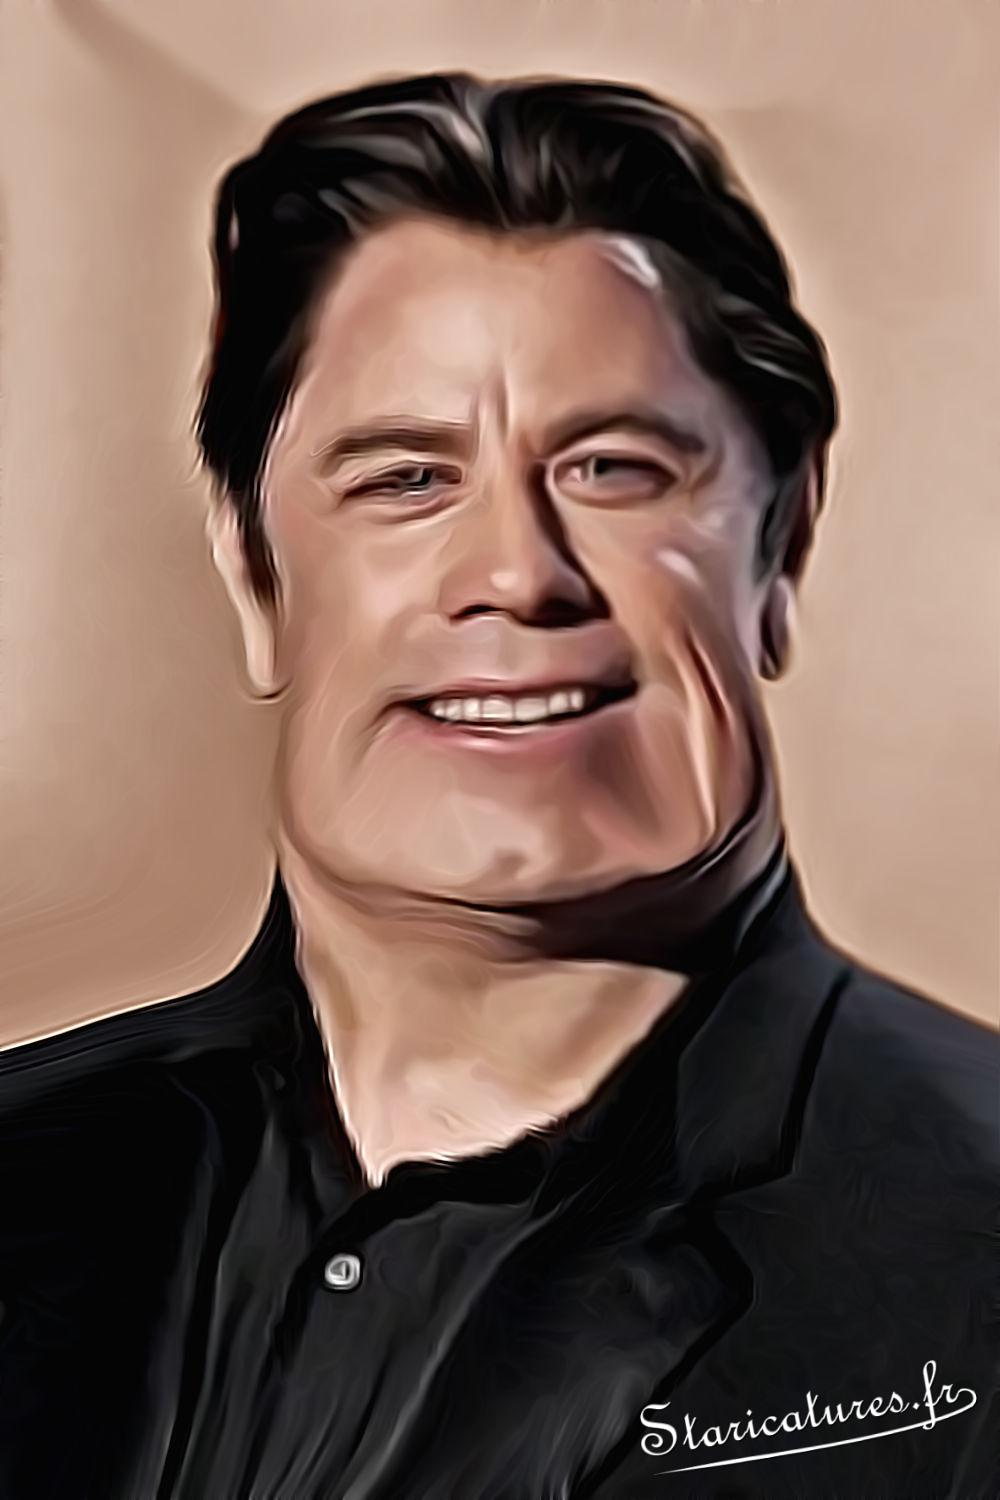 Caricature de John Travolta